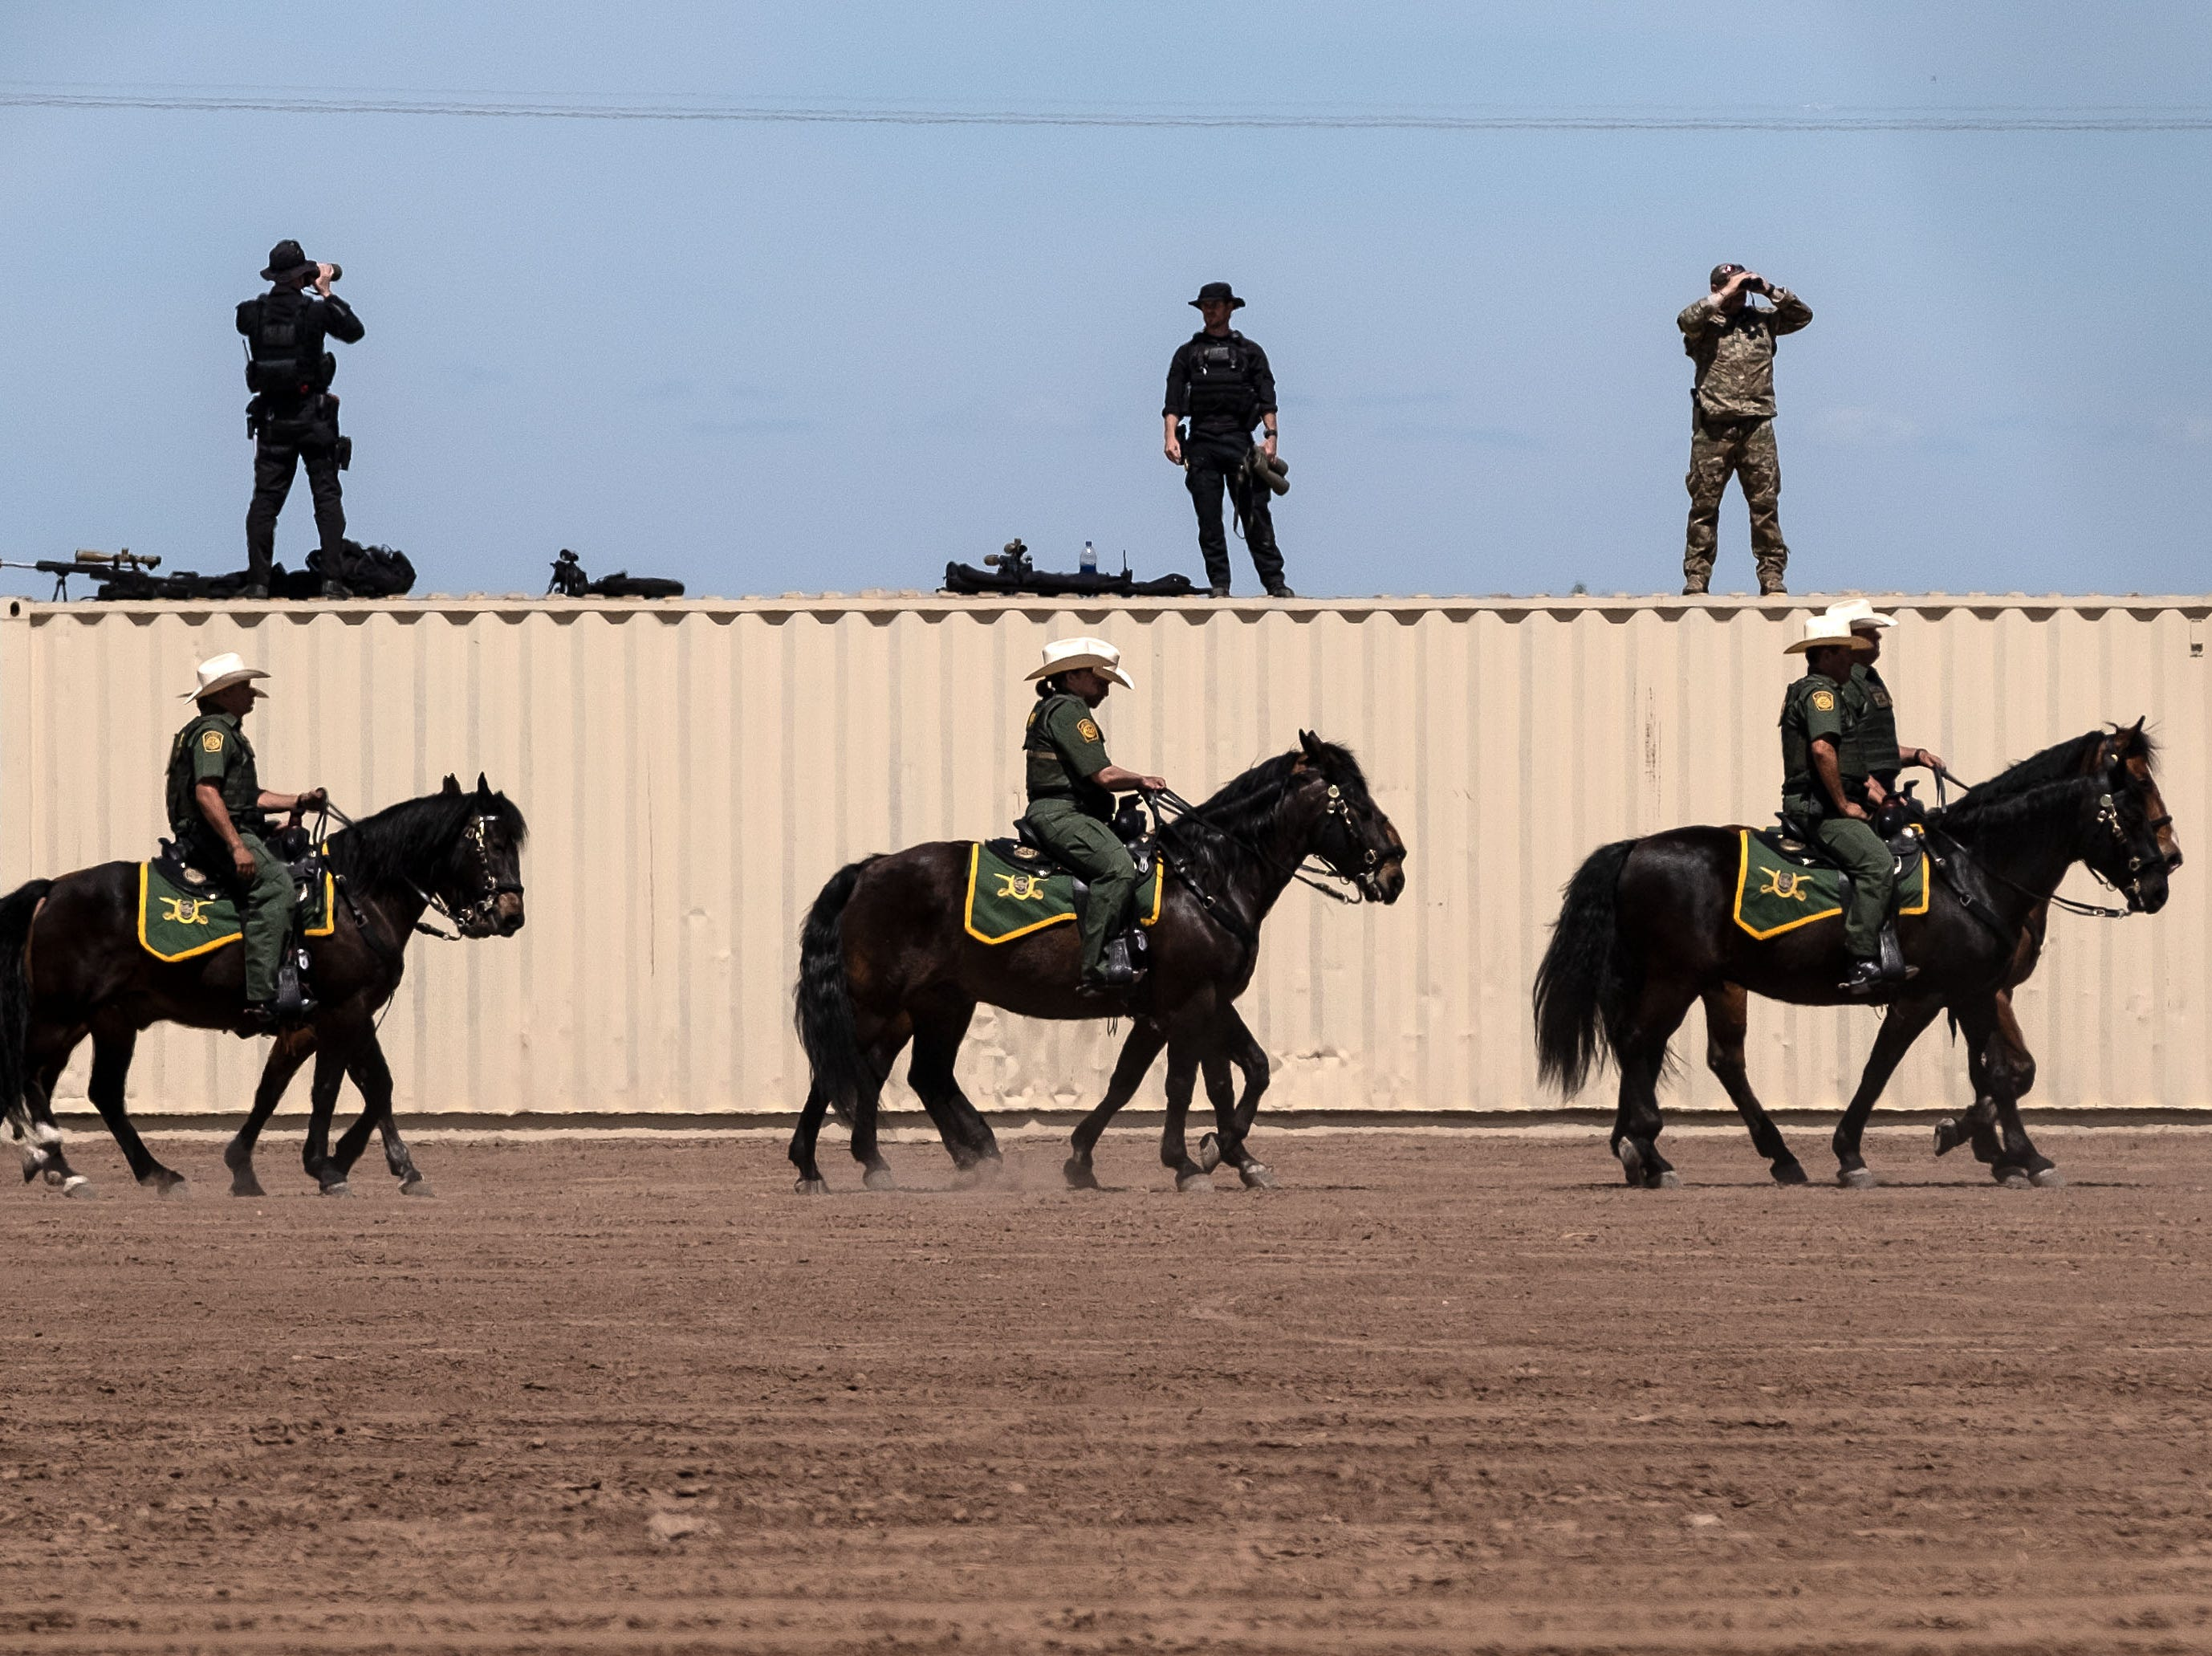 Members of the US secret service and border patrol agents on horseback, patrol near the US-Mexico border fence in preparation for the visit of US President Donald Trump to Calexico, Calif., as seen from Mexicali, Baja California state, Mexico, on April 5, 2019.